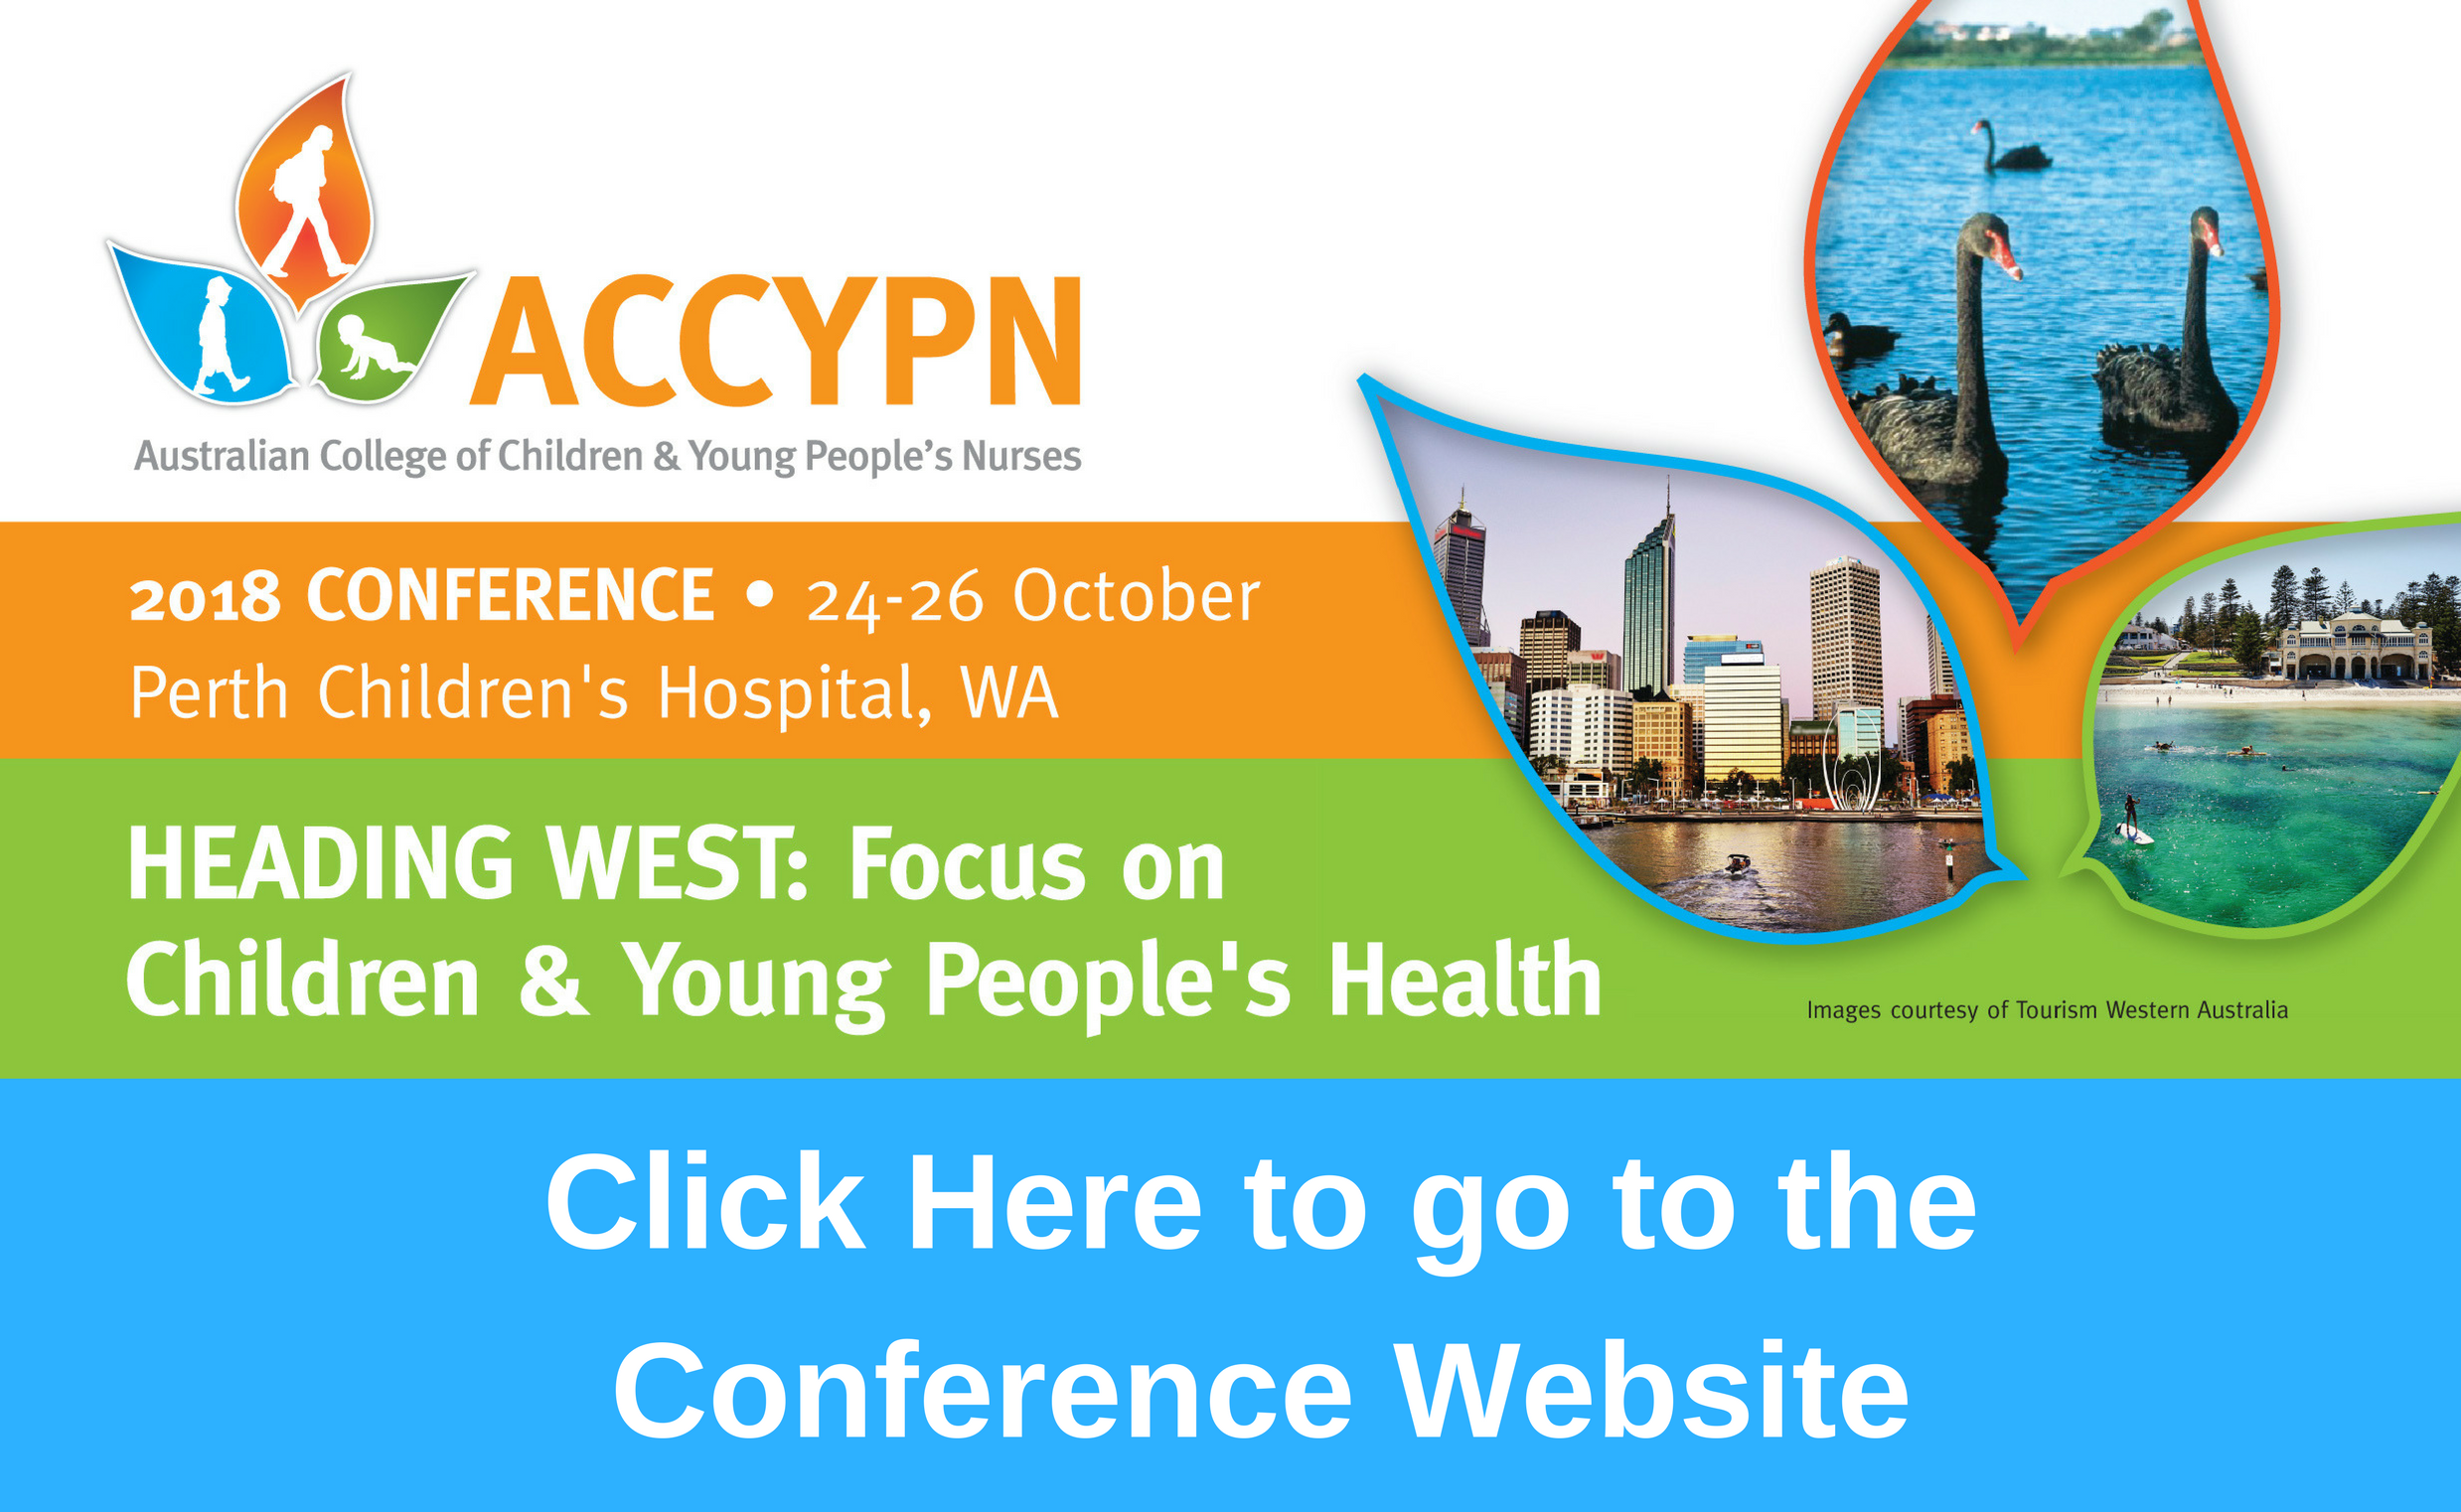 ACCYPN 2018 Conf Website